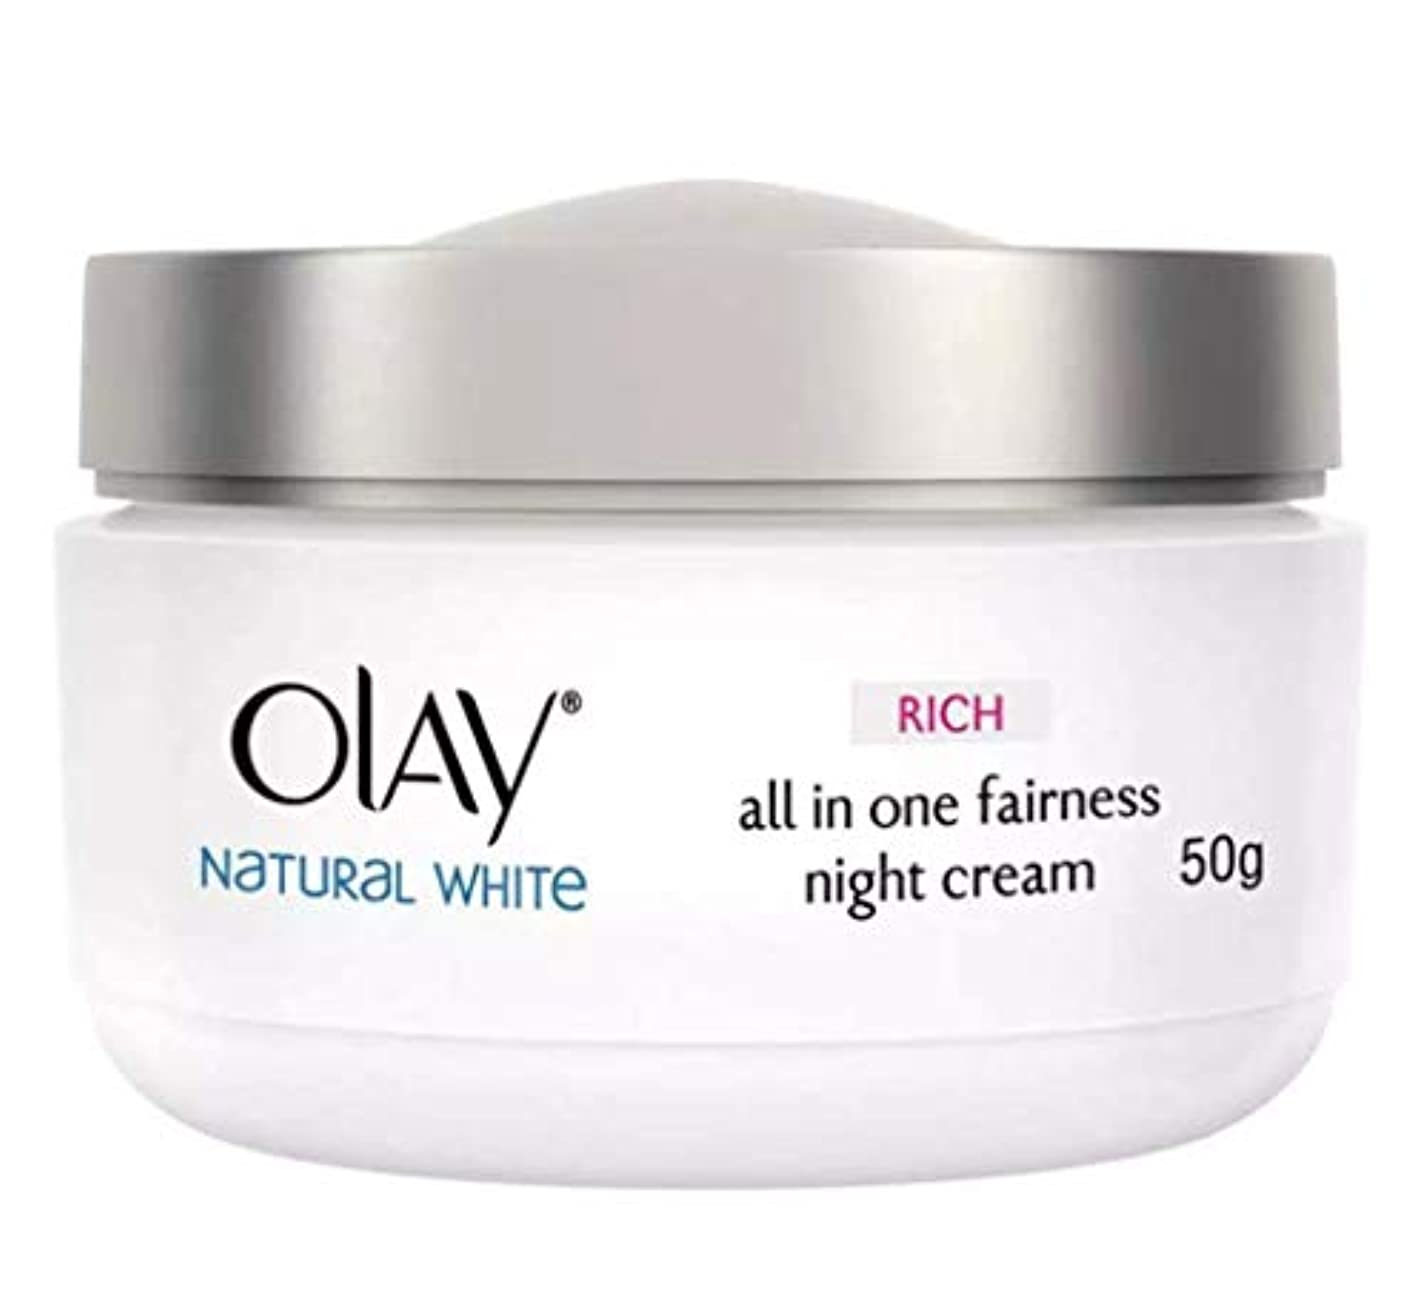 OLAY WHITE RADIANCE NIGHT WHITENING CREAM【NIGHT CREAM】 50g [並行輸入品]